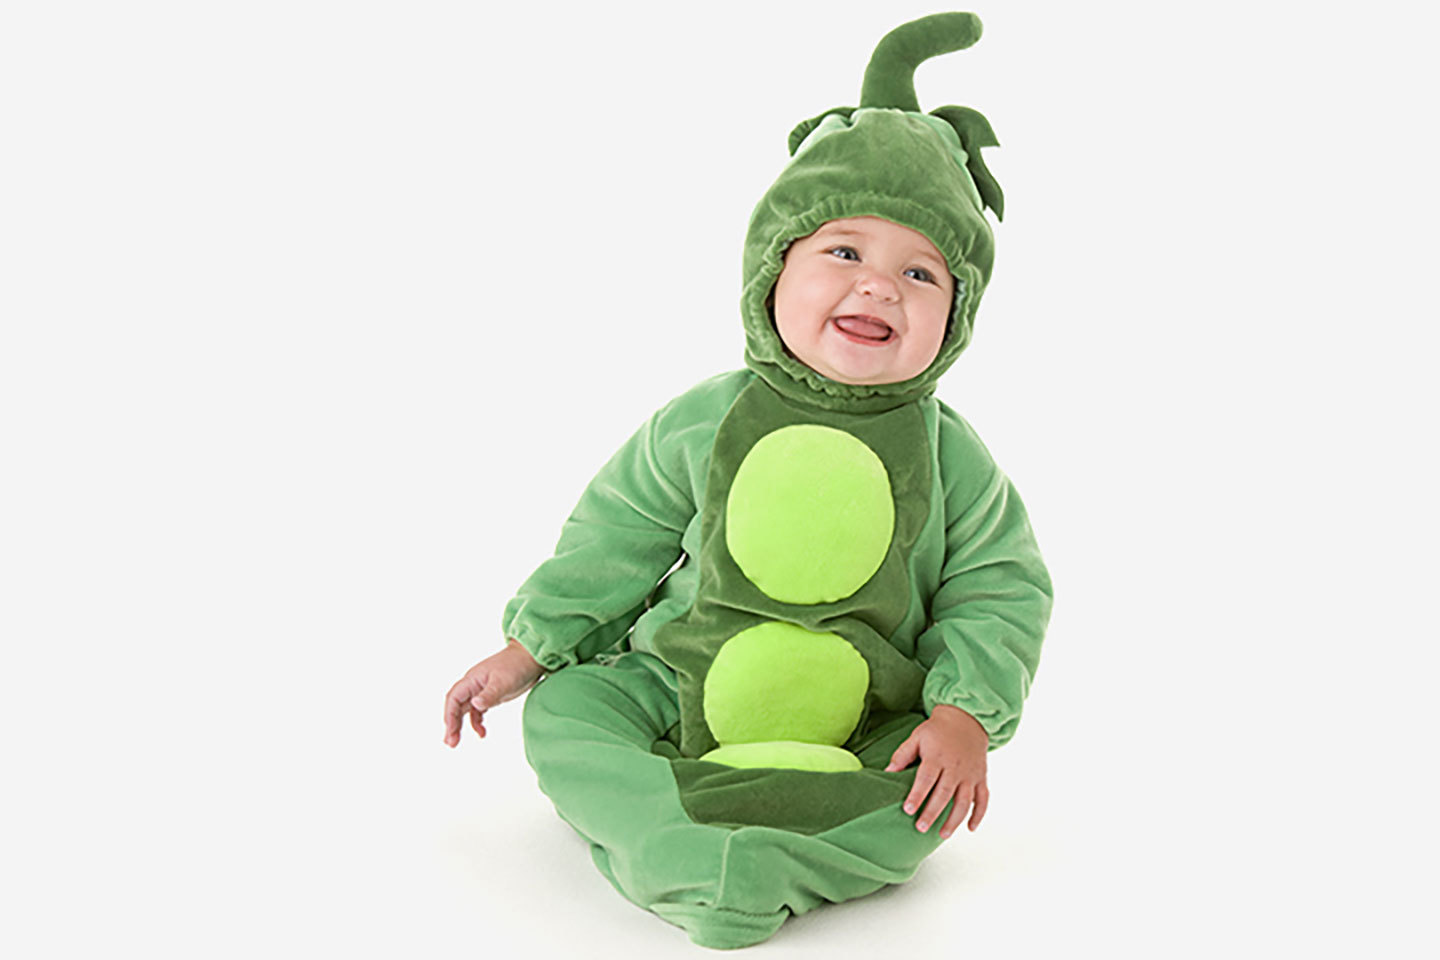 baby with green peas in a pod costume